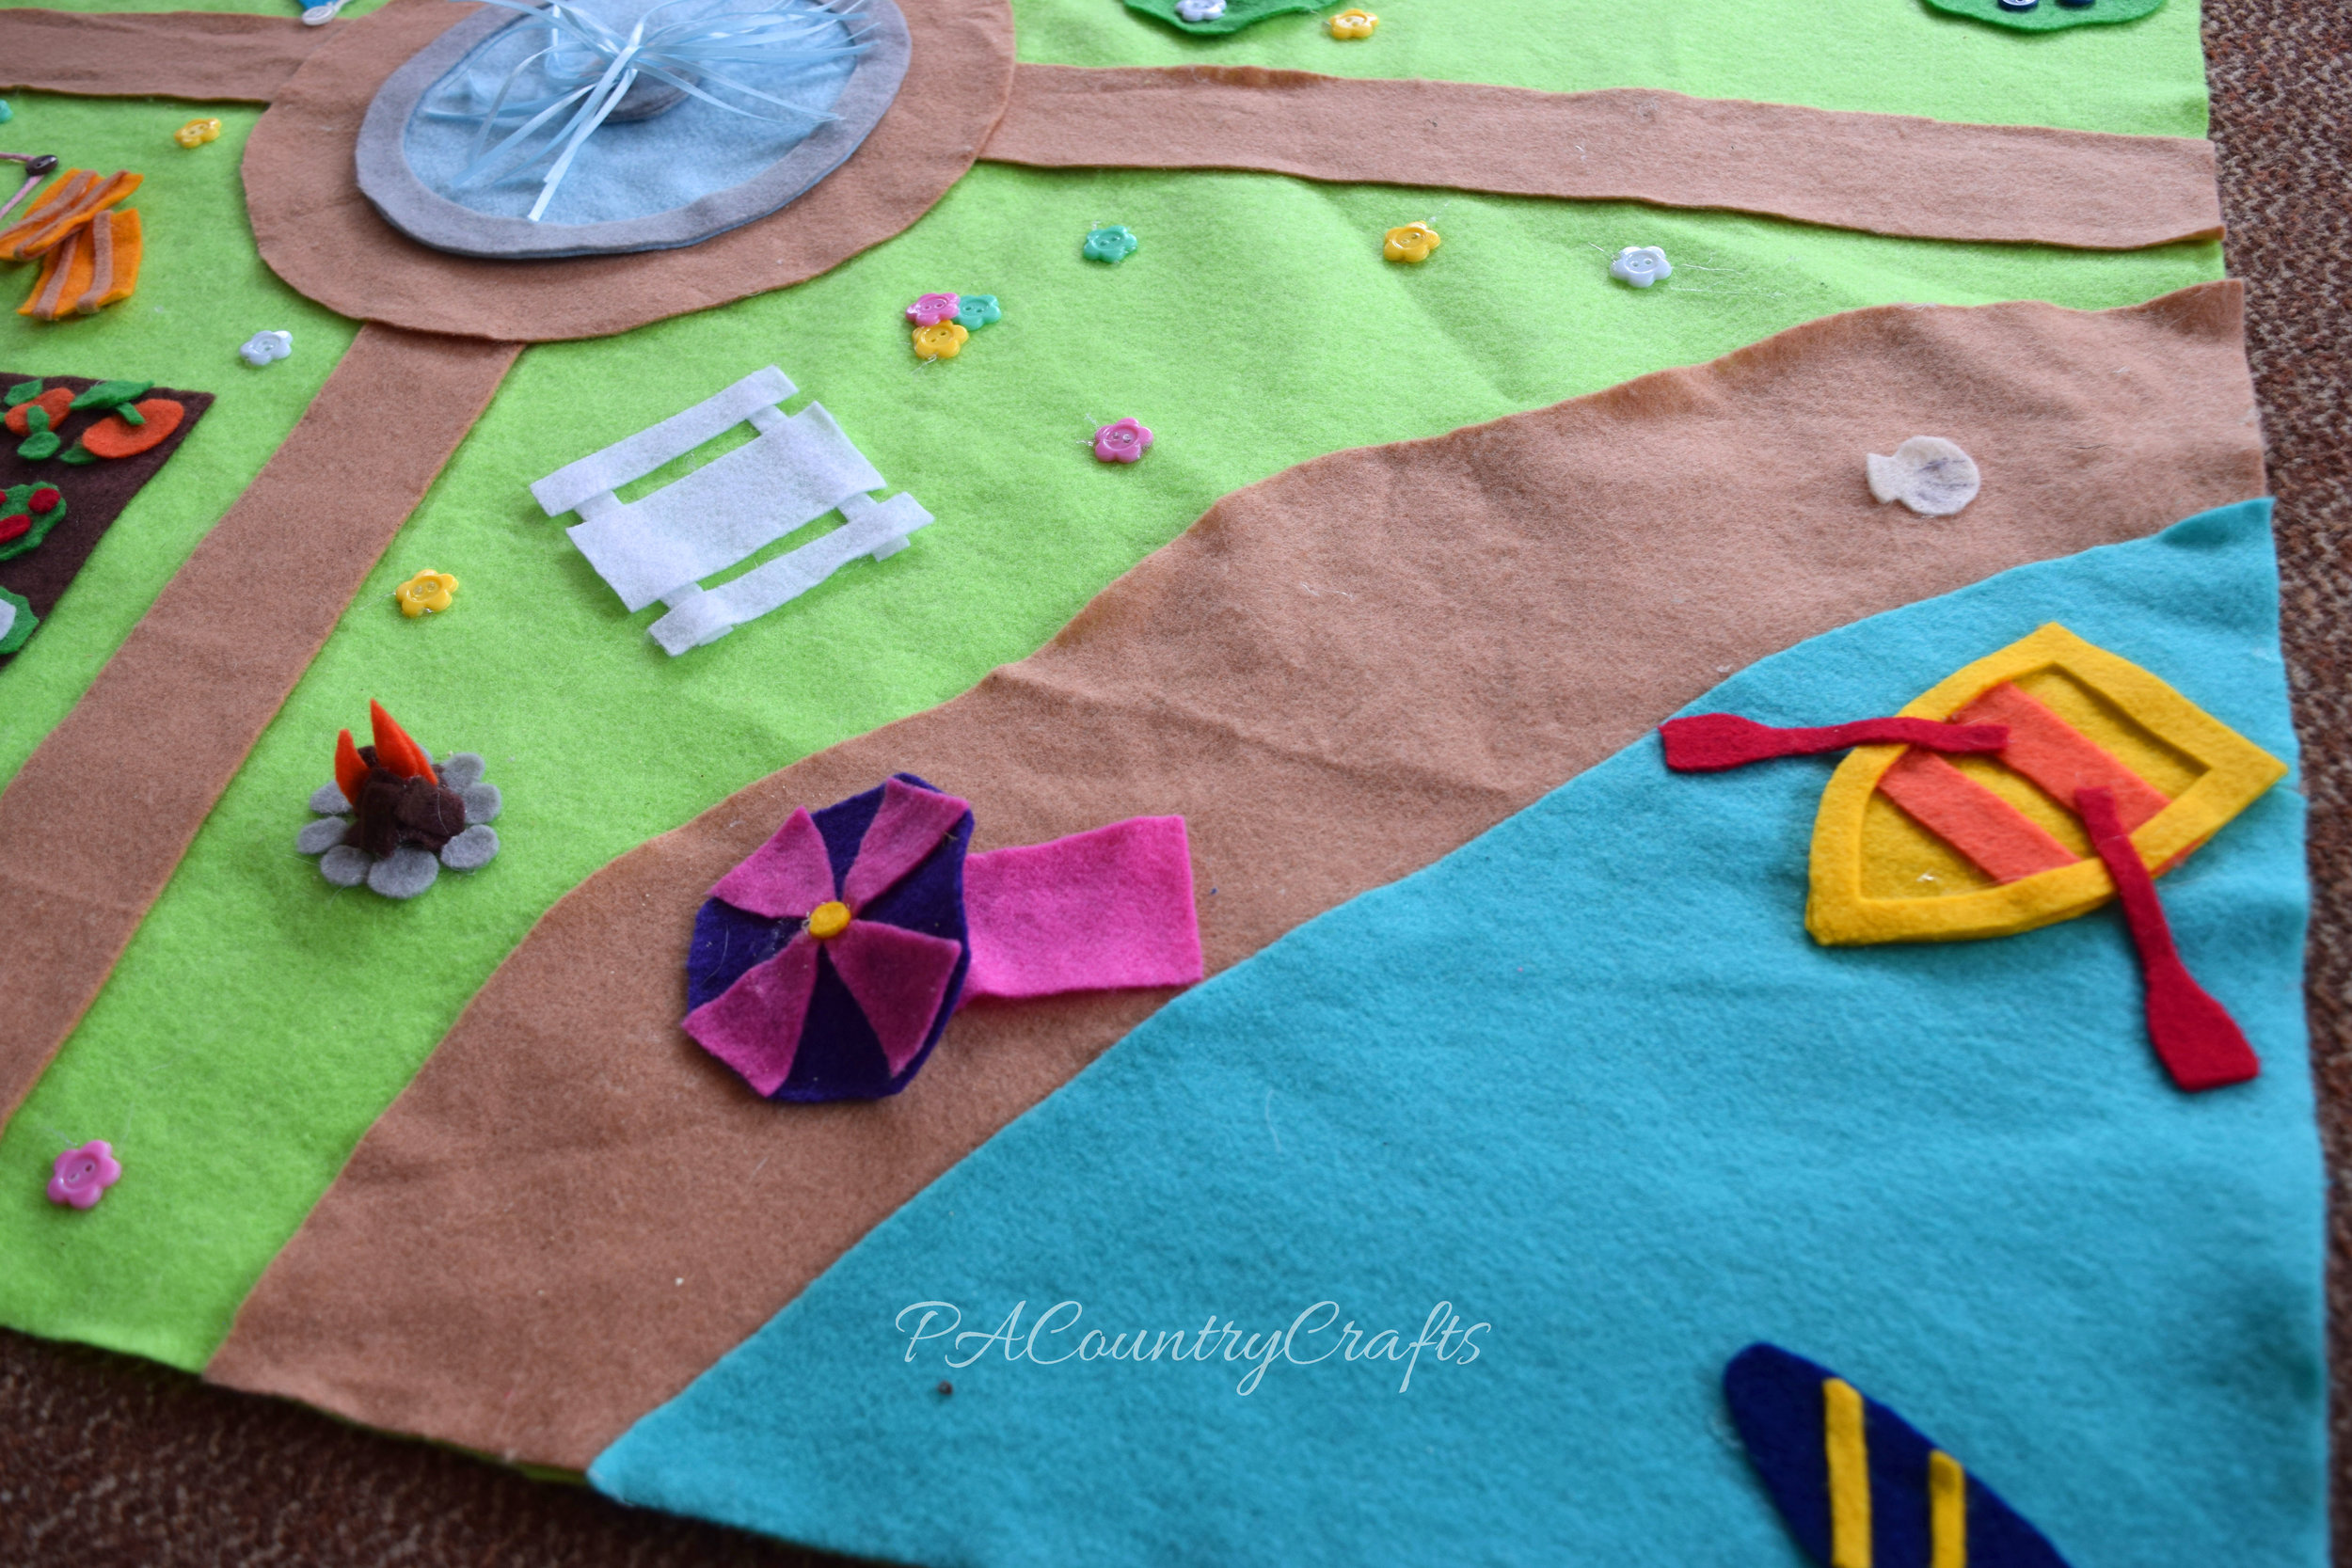 No-sew felt play mat with a beach scene.